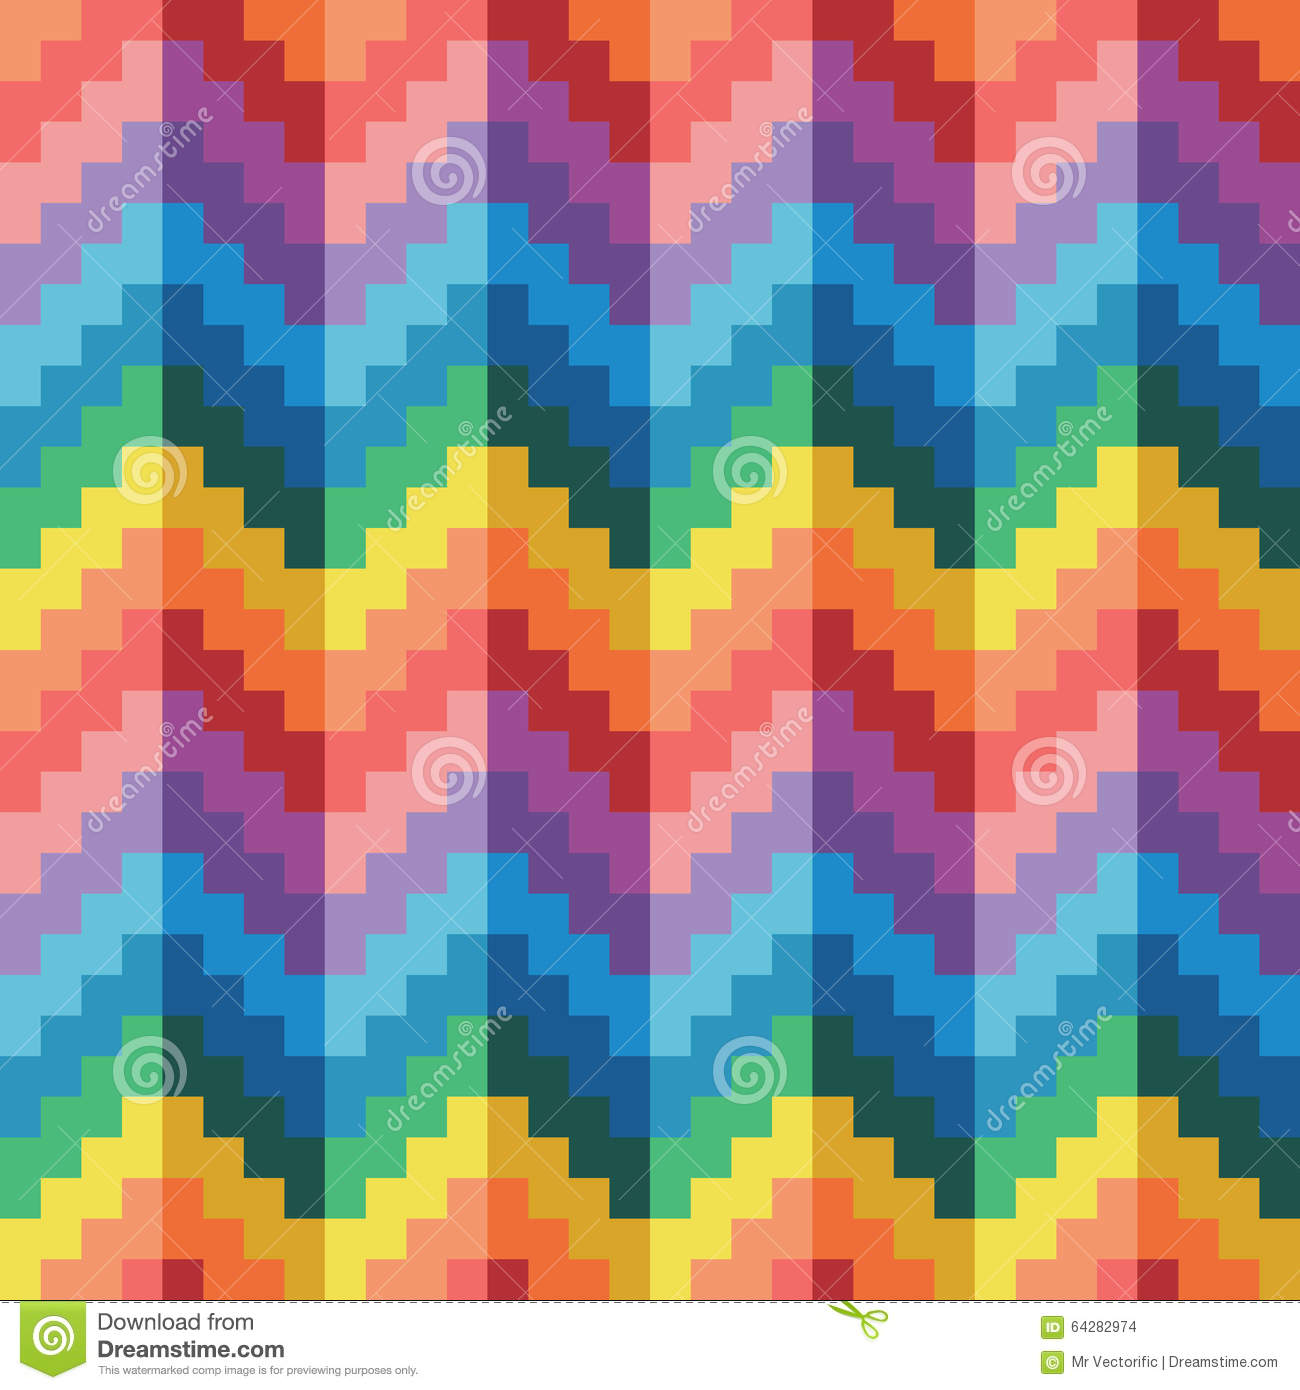 Seamless Abstract Geomatric Pixel Rainbow Zigzag Vector Pattern Stock Vector Illustration Of Cover Artwork 64282974